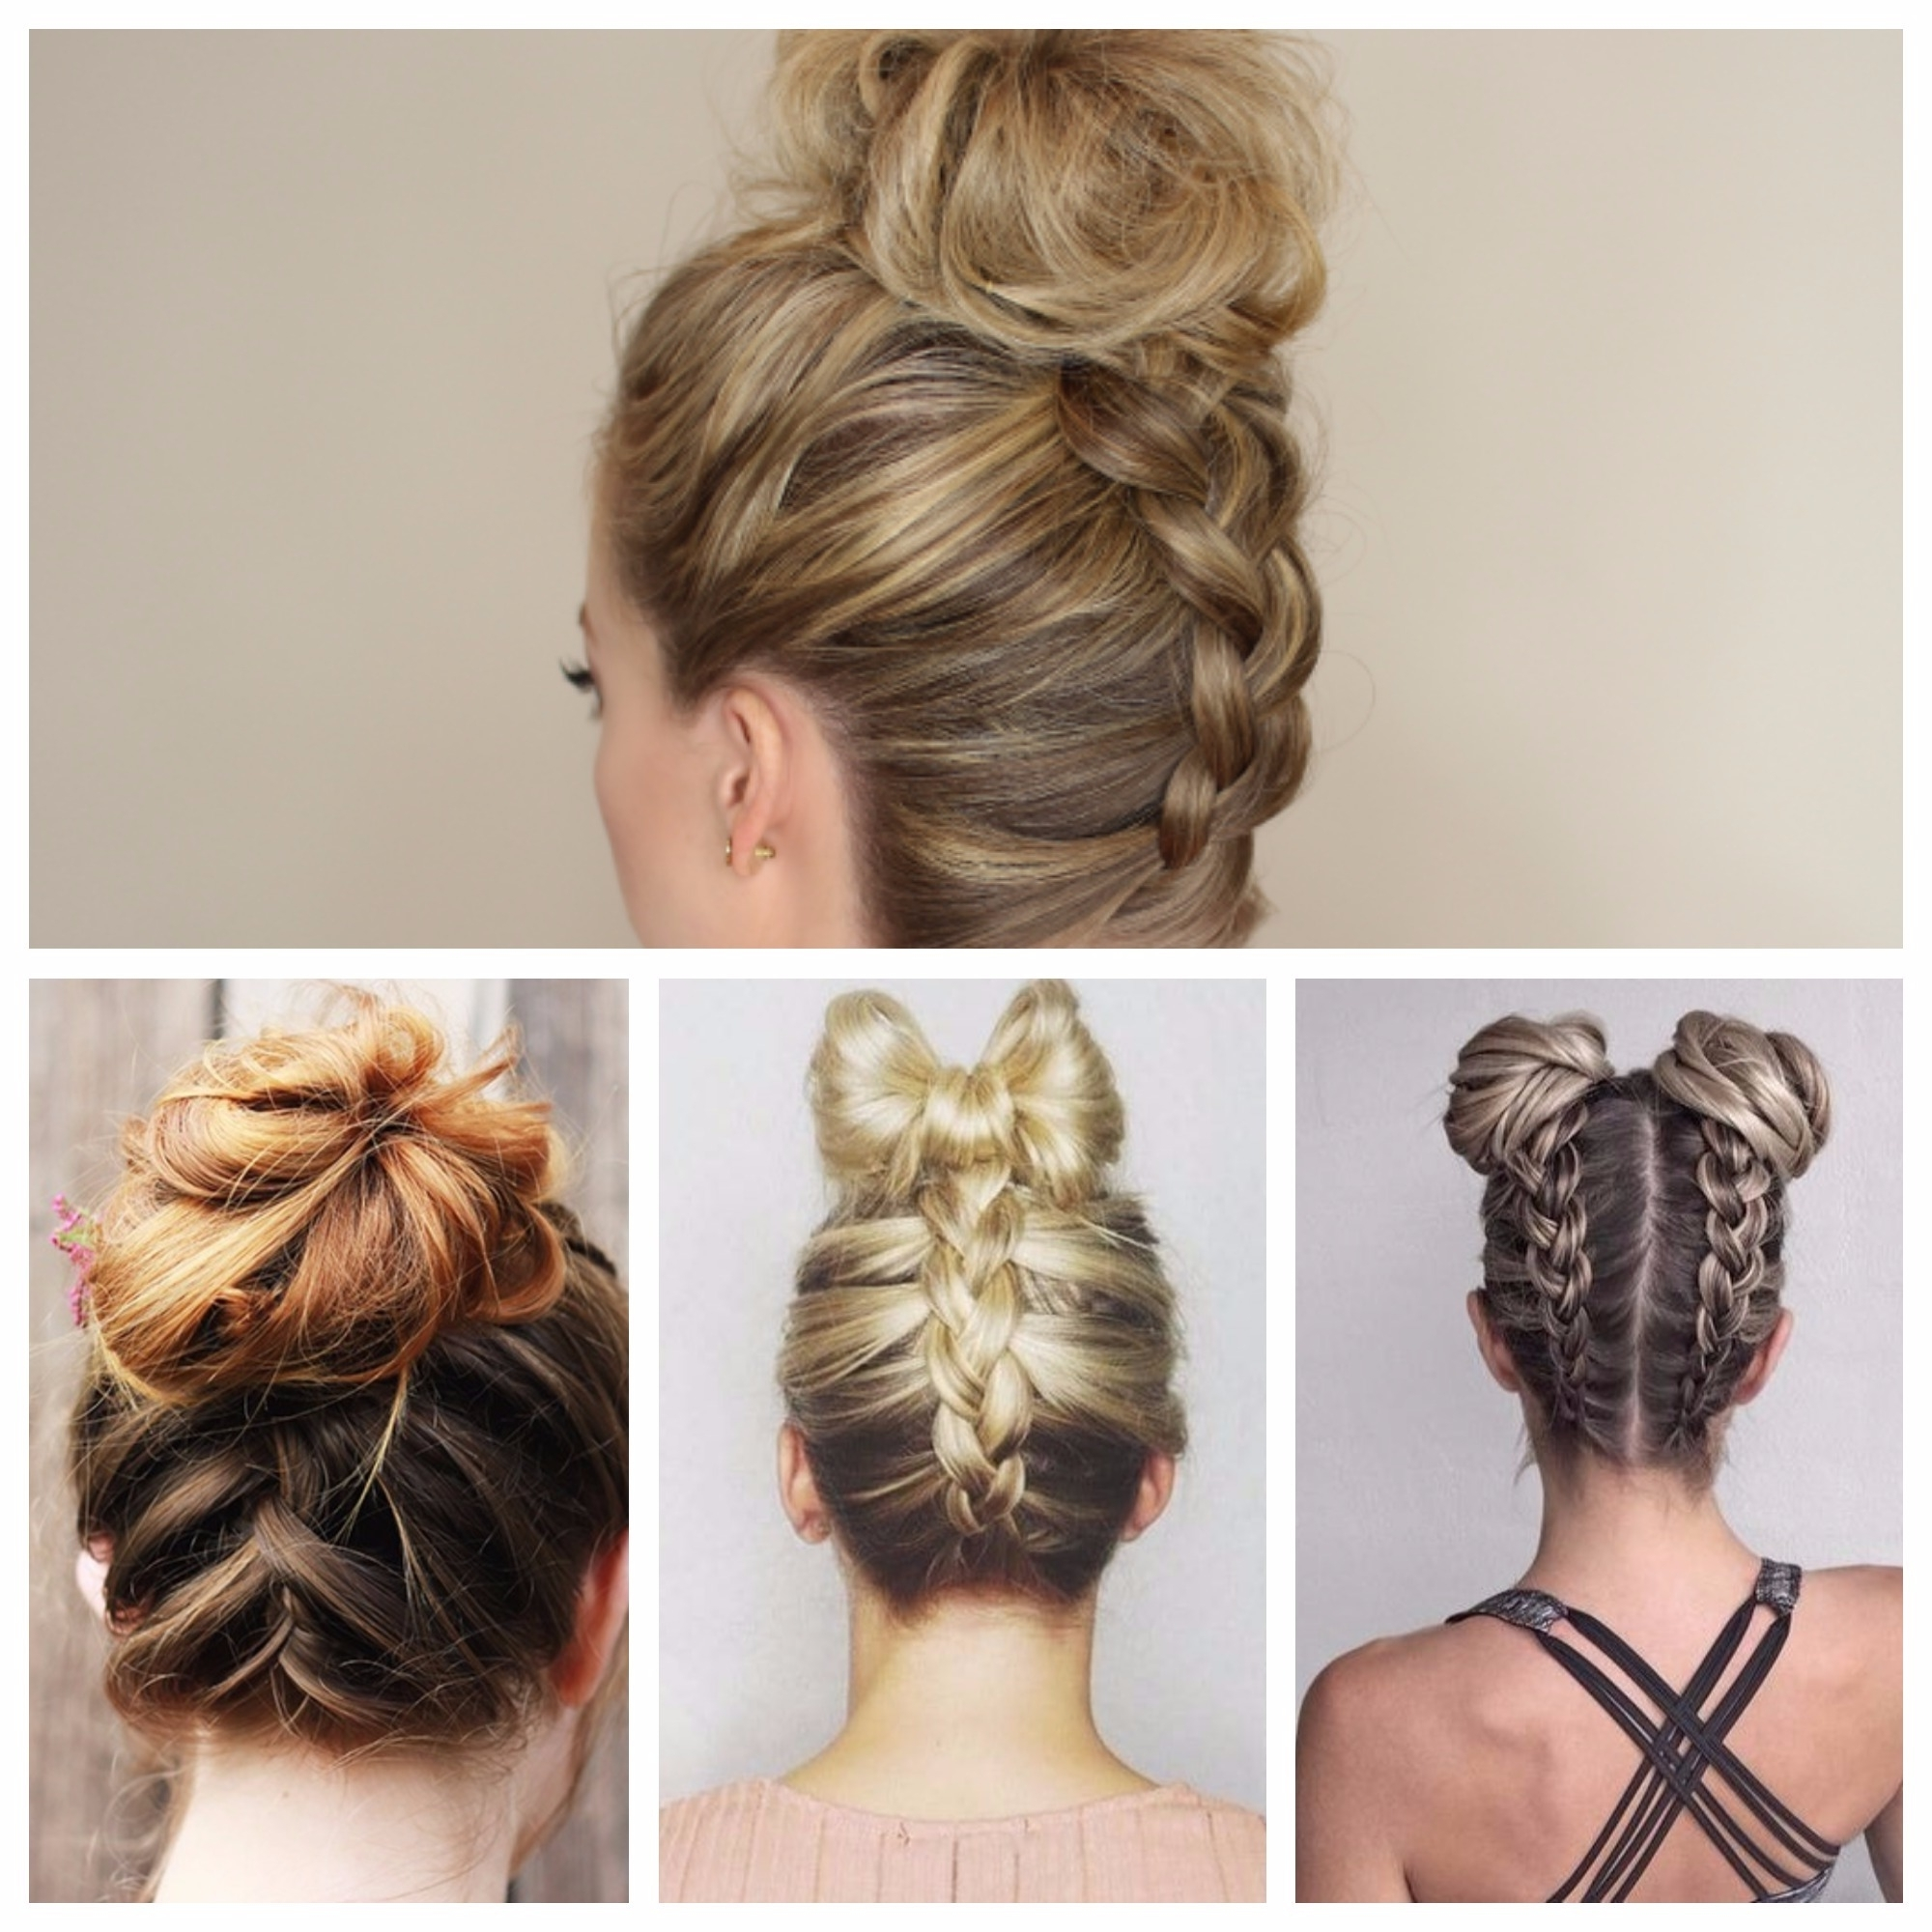 Upside Down French Braid Hairstyles For 2018 – New Hairstyles 2017 Throughout 2017 Upside Down Braids With Double Buns (View 14 of 15)